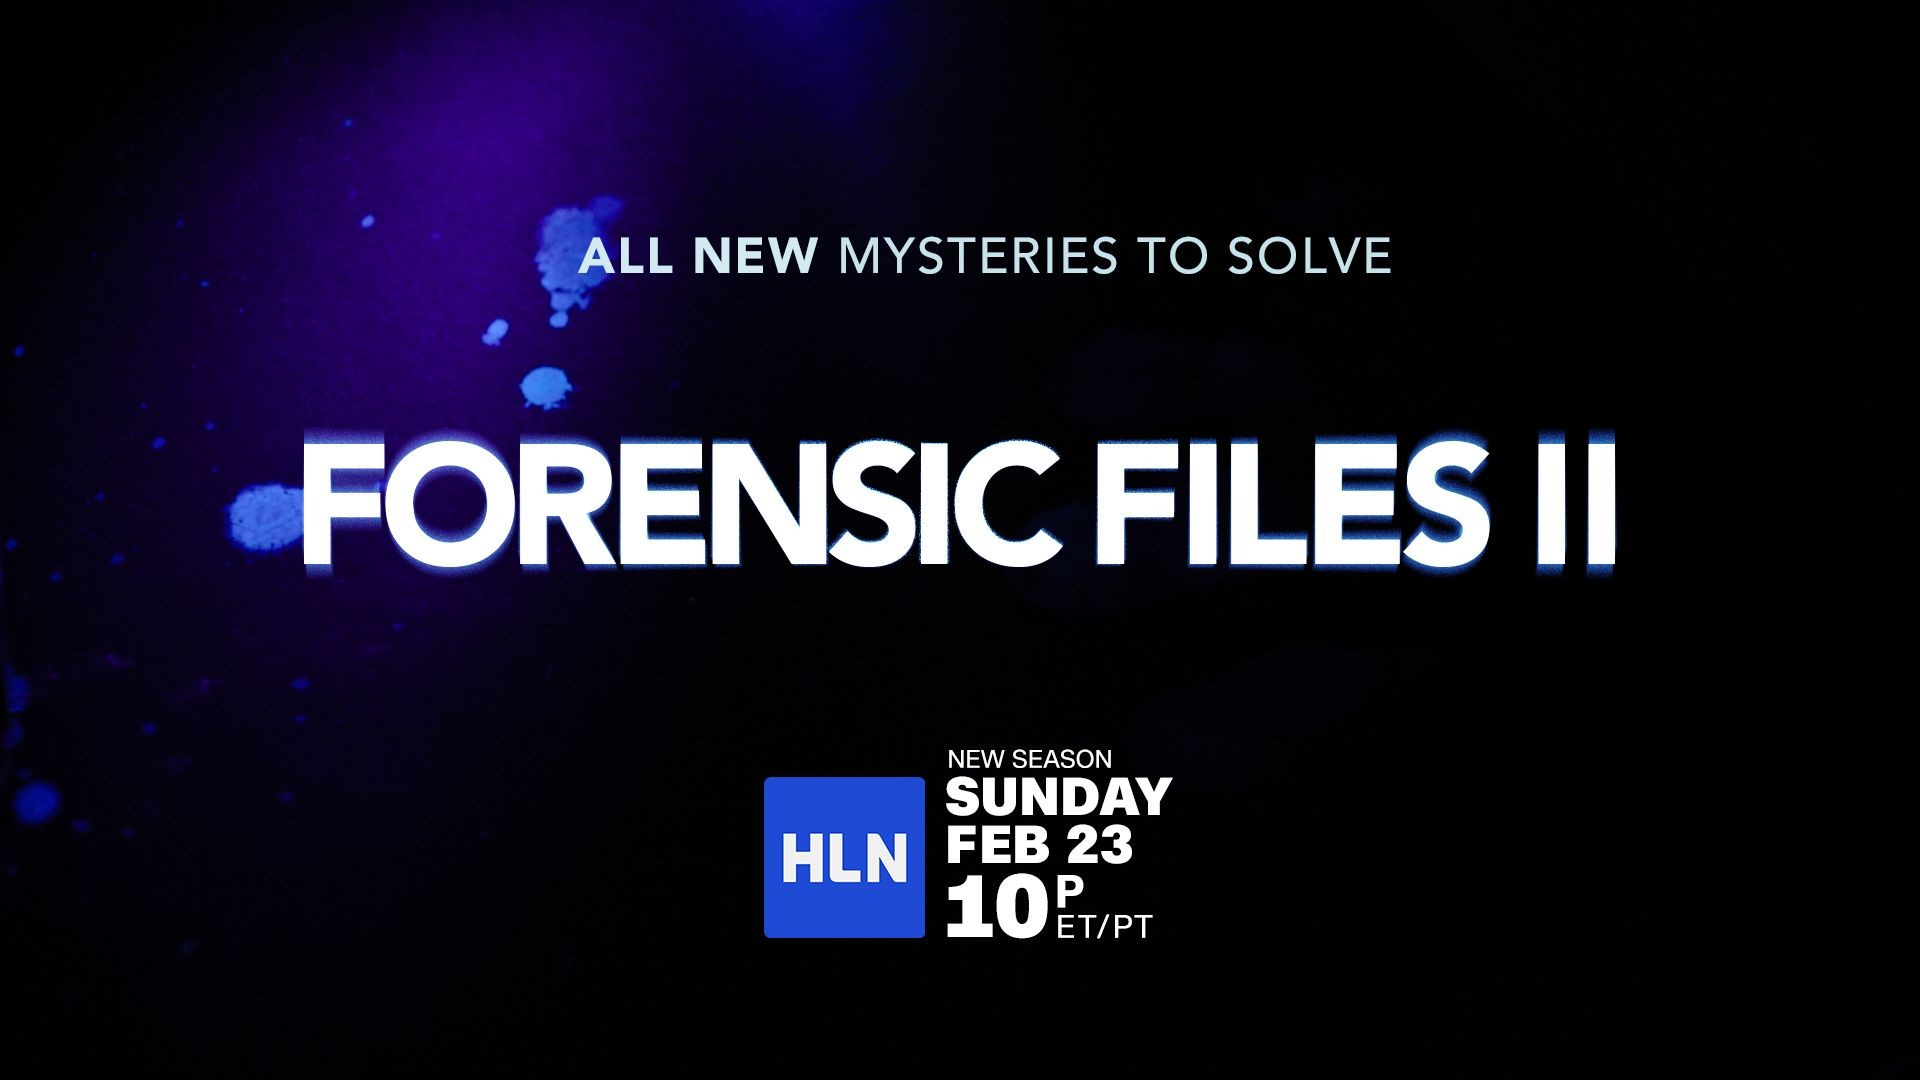 The Wait Is Over Forensic Files Ii Narrated By Bill Camp Dark Waters Joker Launches Sunday February 23 At 10pm Et Pt Exclusively On Hln